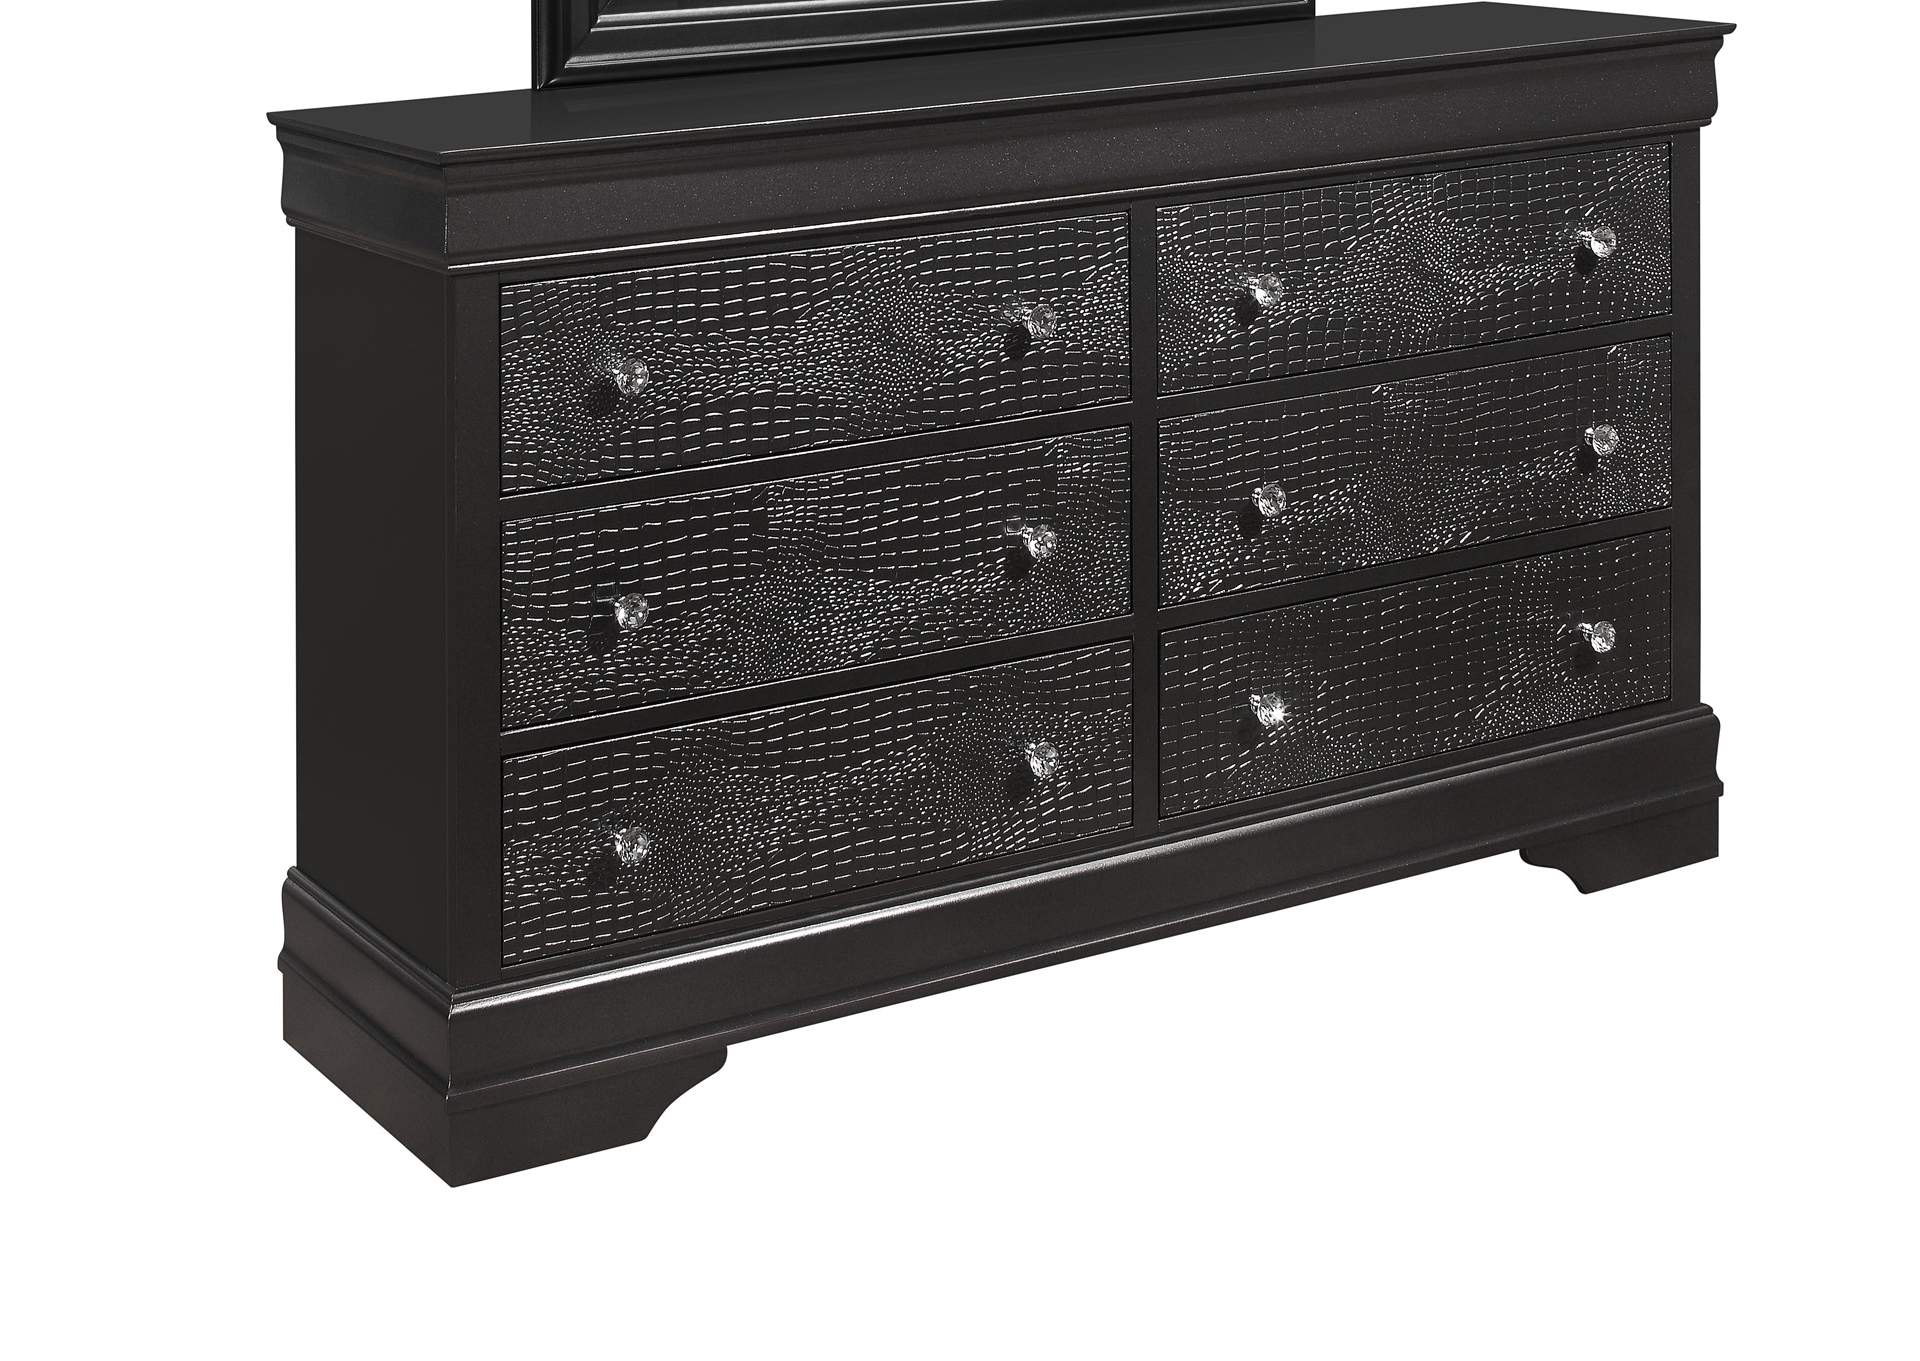 Pompei Metallic Grey Dresser,Global Furniture USA